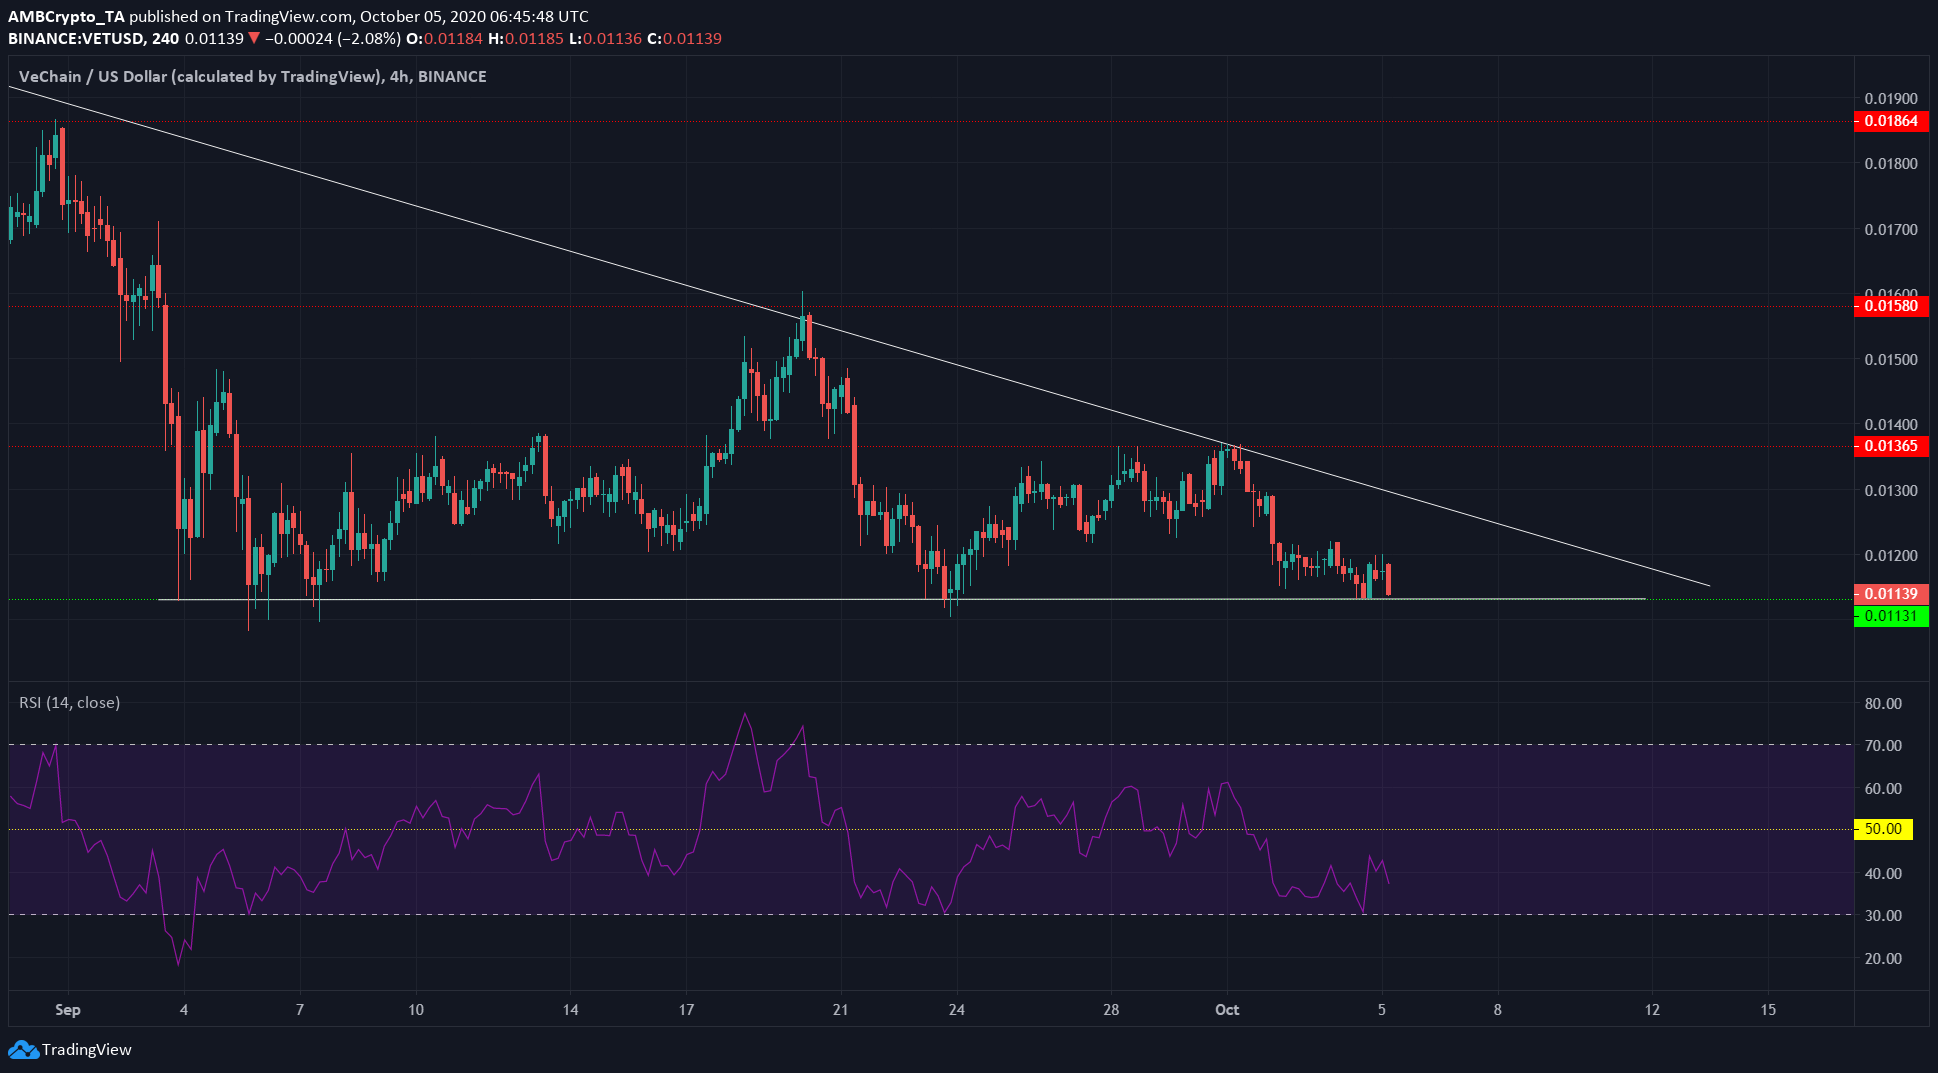 Chainlink, Cosmos, VeChain Price Analysis: 05 October